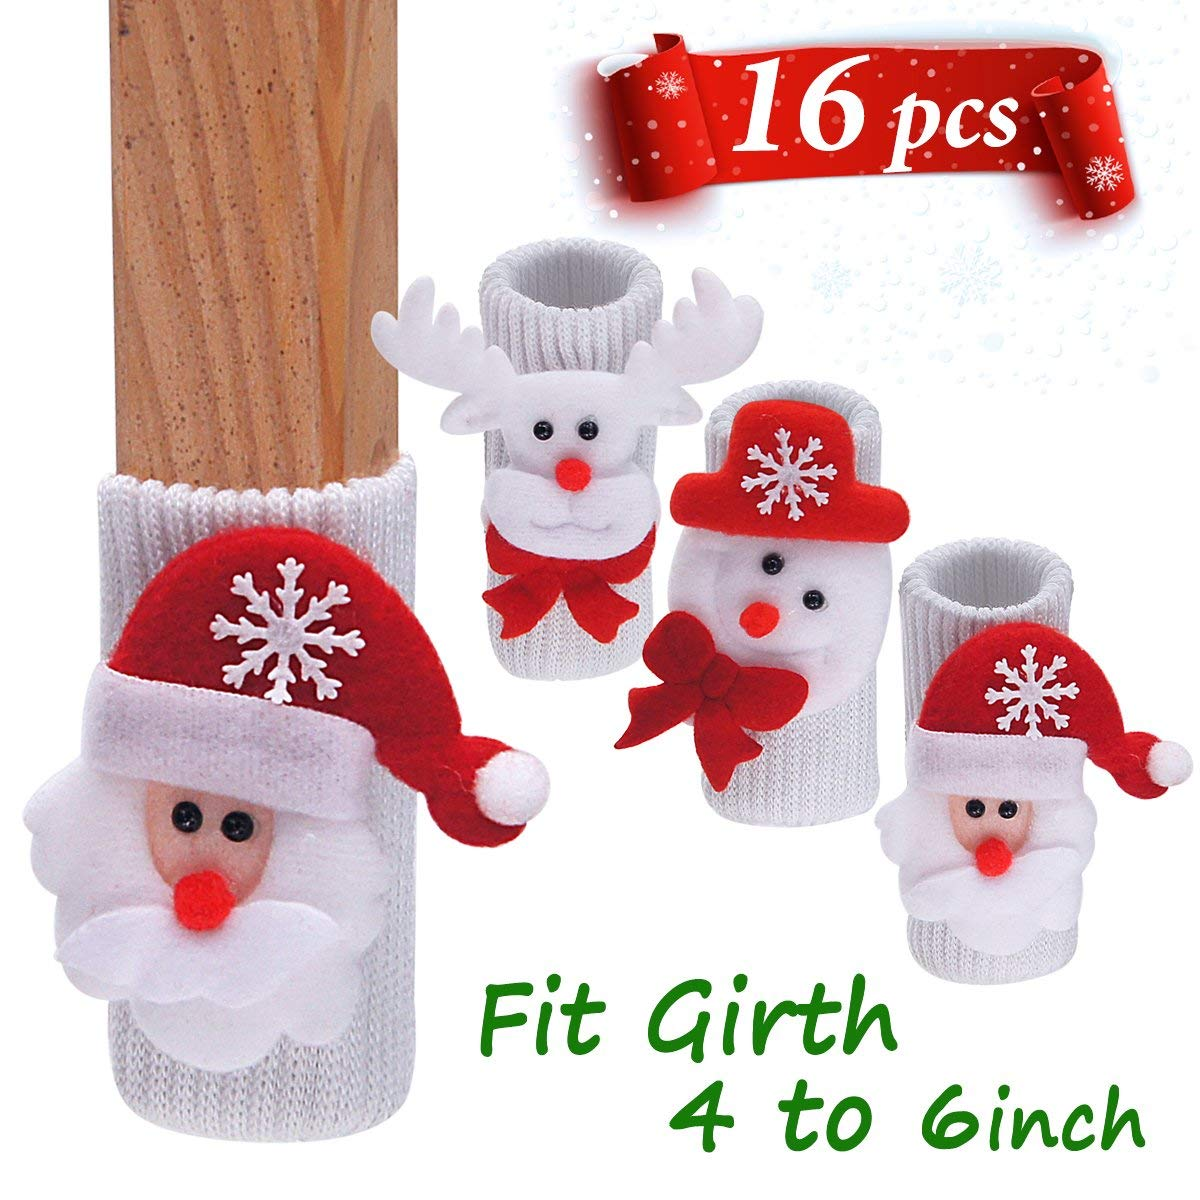 """LimBridge 16pcs Christmas Chair Socks, Elastic Chair Leg Feet Floor Protectors Covers Set, Fit Girth from 4"""" to 6"""", Vertical Knitted White Red"""